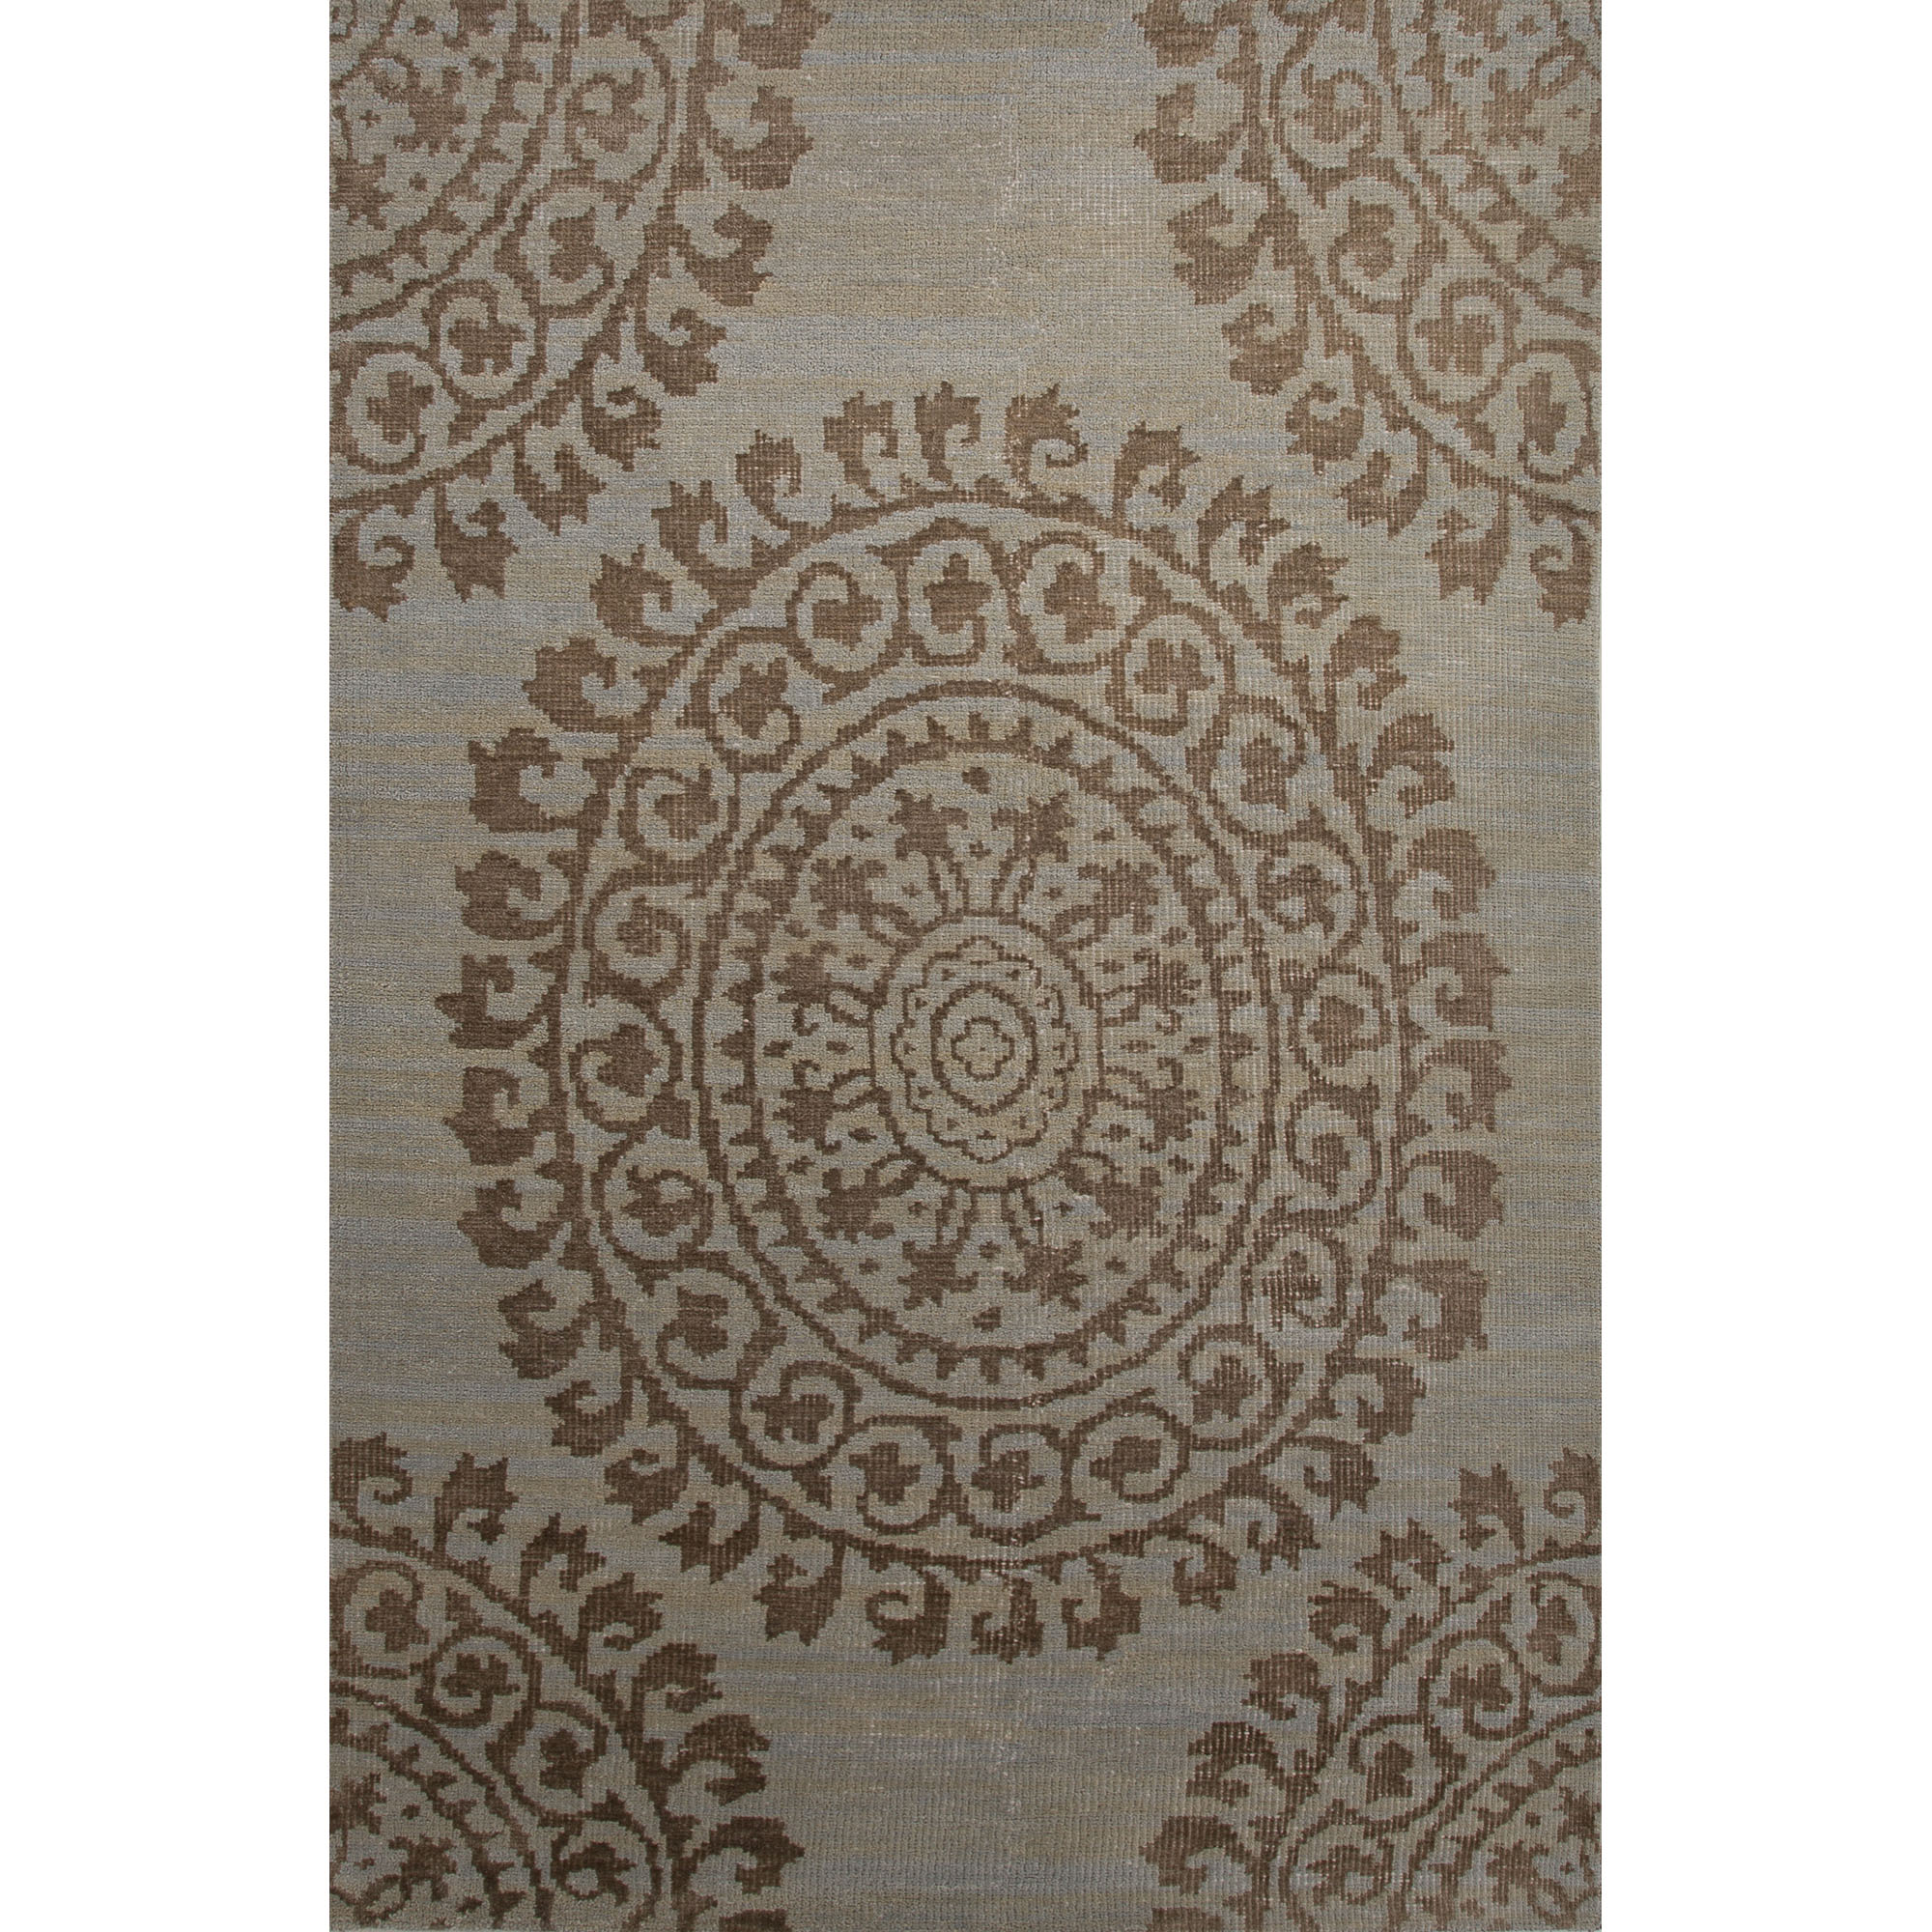 JAIPUR Rugs Timeless By Jennifer Adams Premium 5 x 8 Rug - Item Number: RUG118483